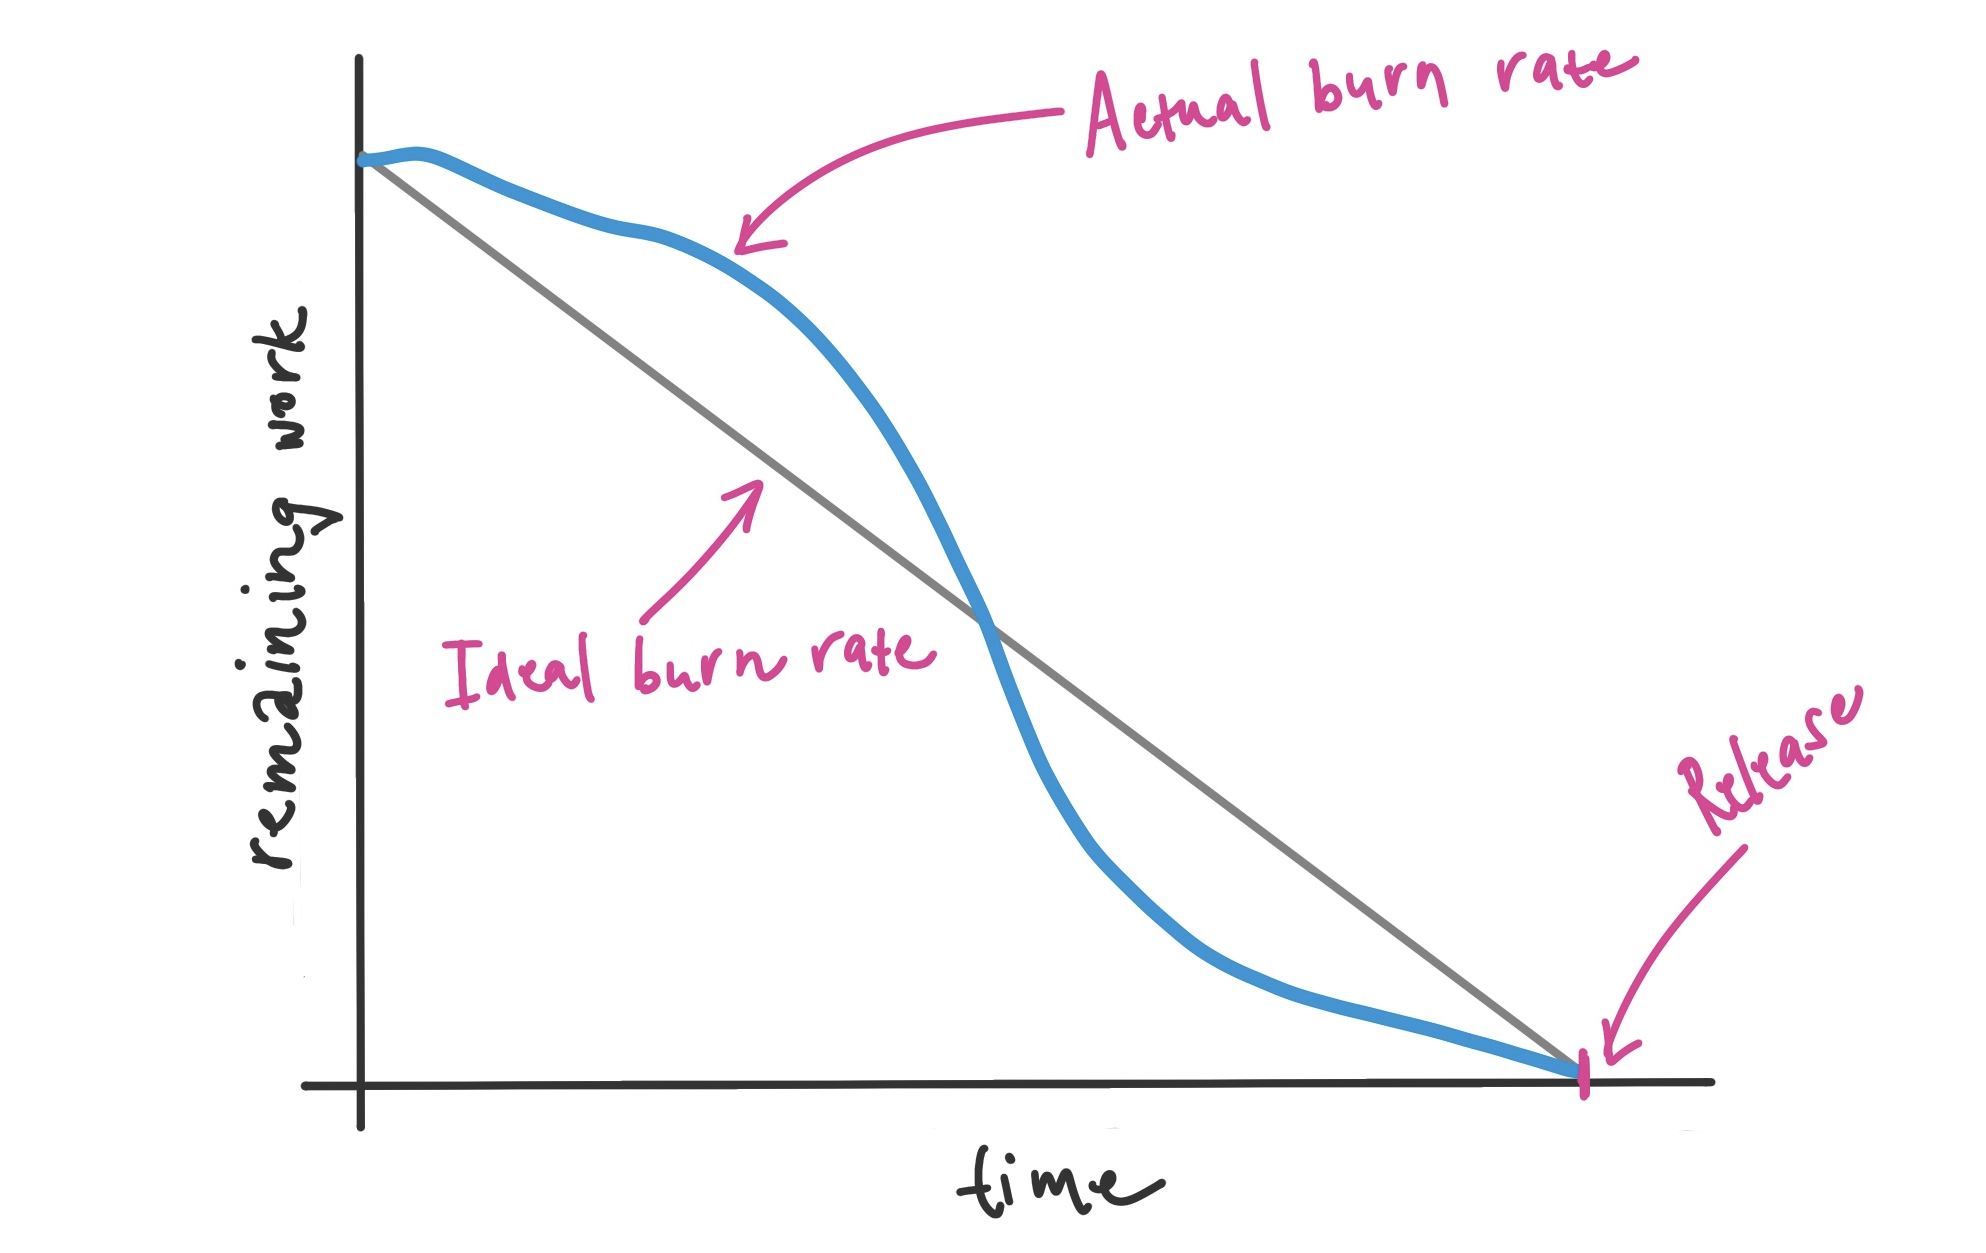 Example of Release burndown chart with Actual and Ideal burn rate.